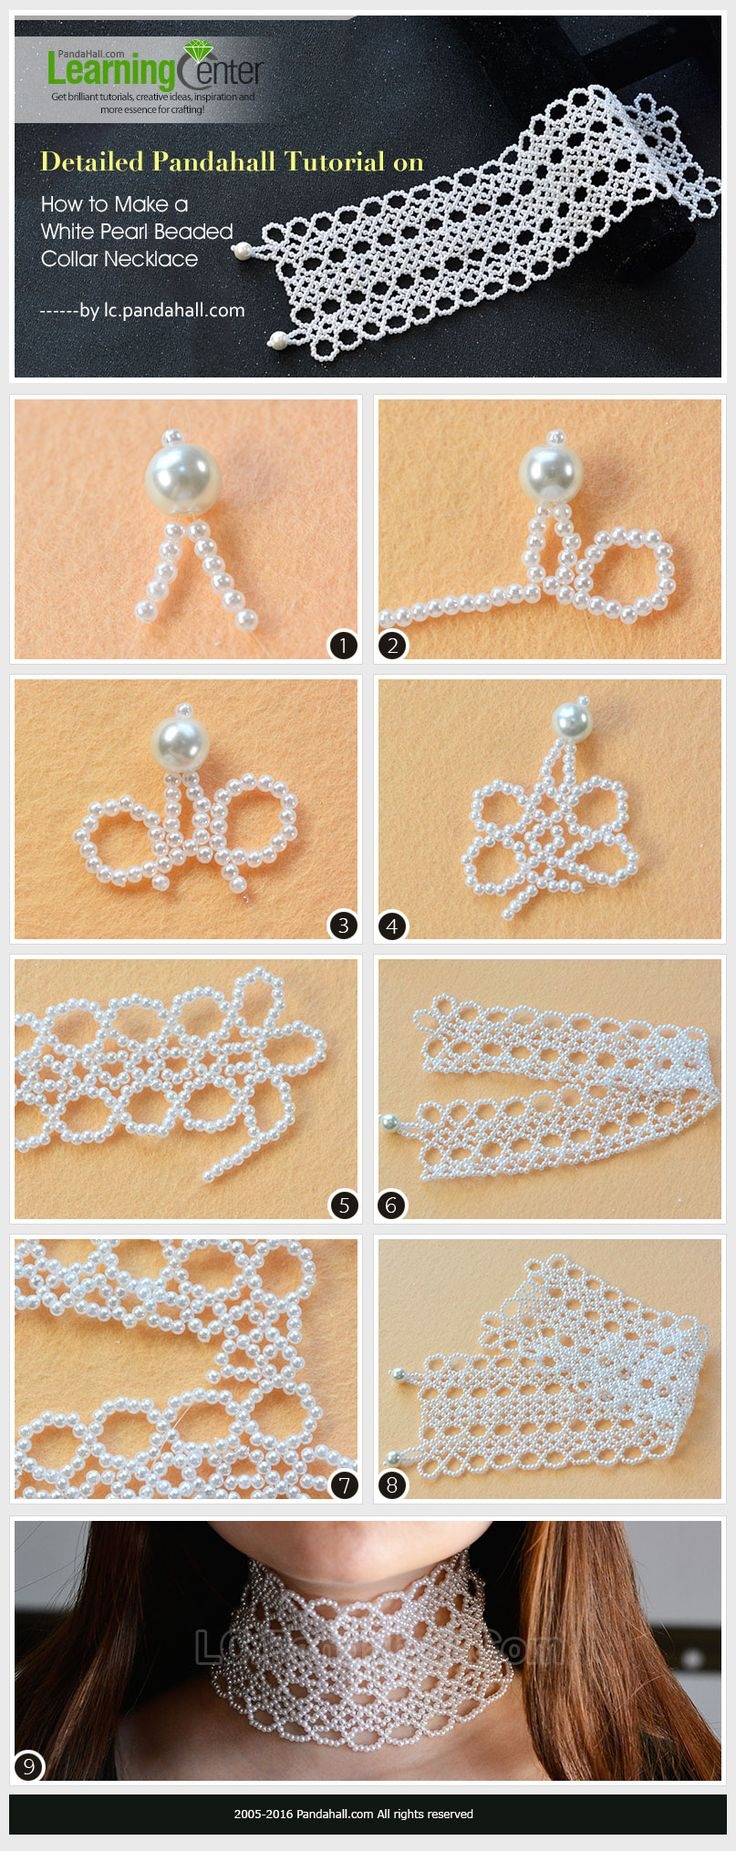 Detailed Pandahall Tutorial on How to Make a White Pearl Beaded Collar Necklace from LC.Pandahall.com